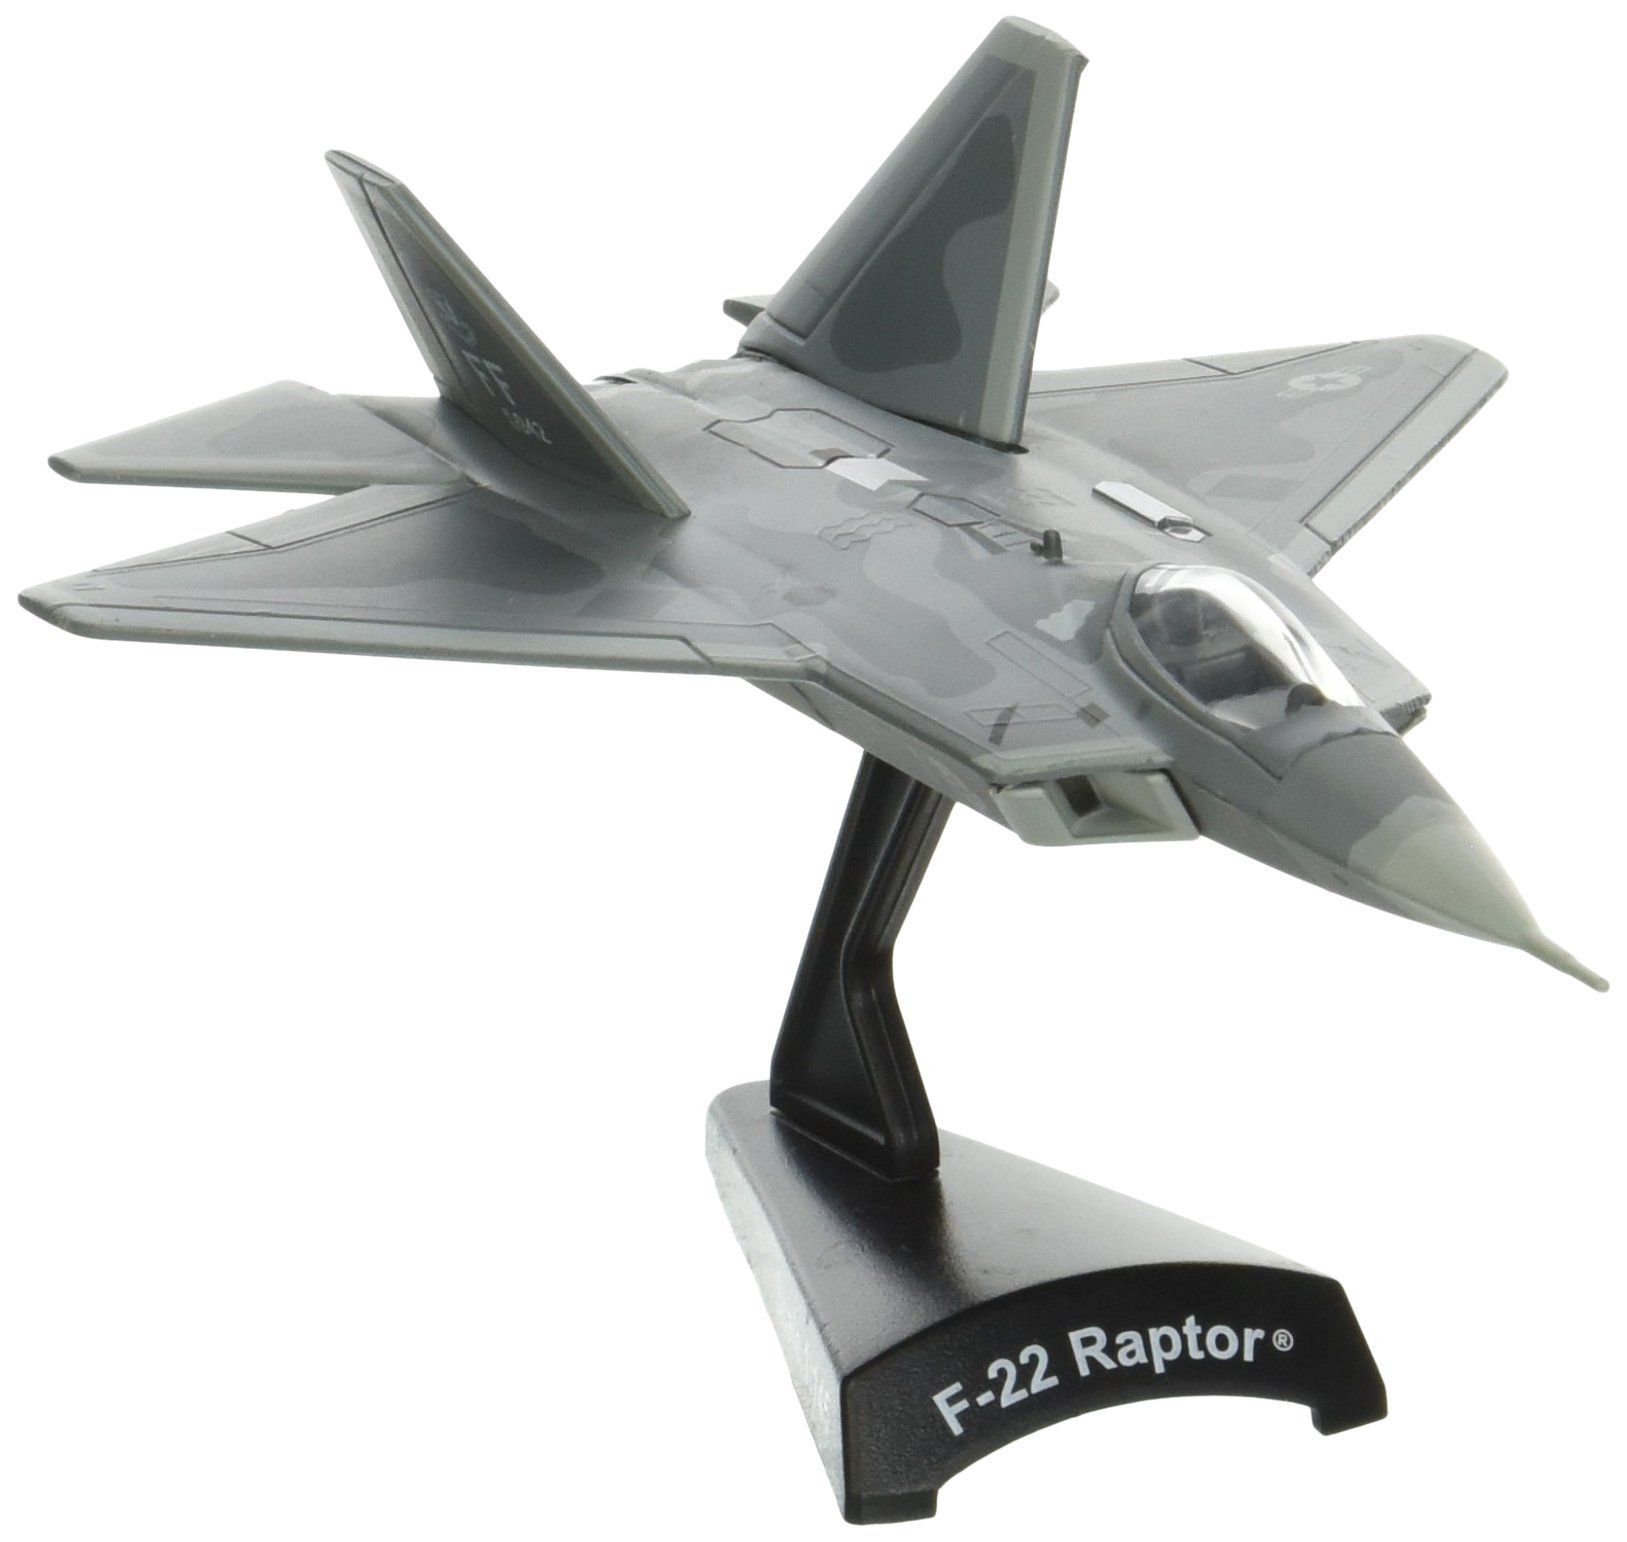 Postage Stamp USAF F-22 RAPTOR 1/145 Raptor Vehicle